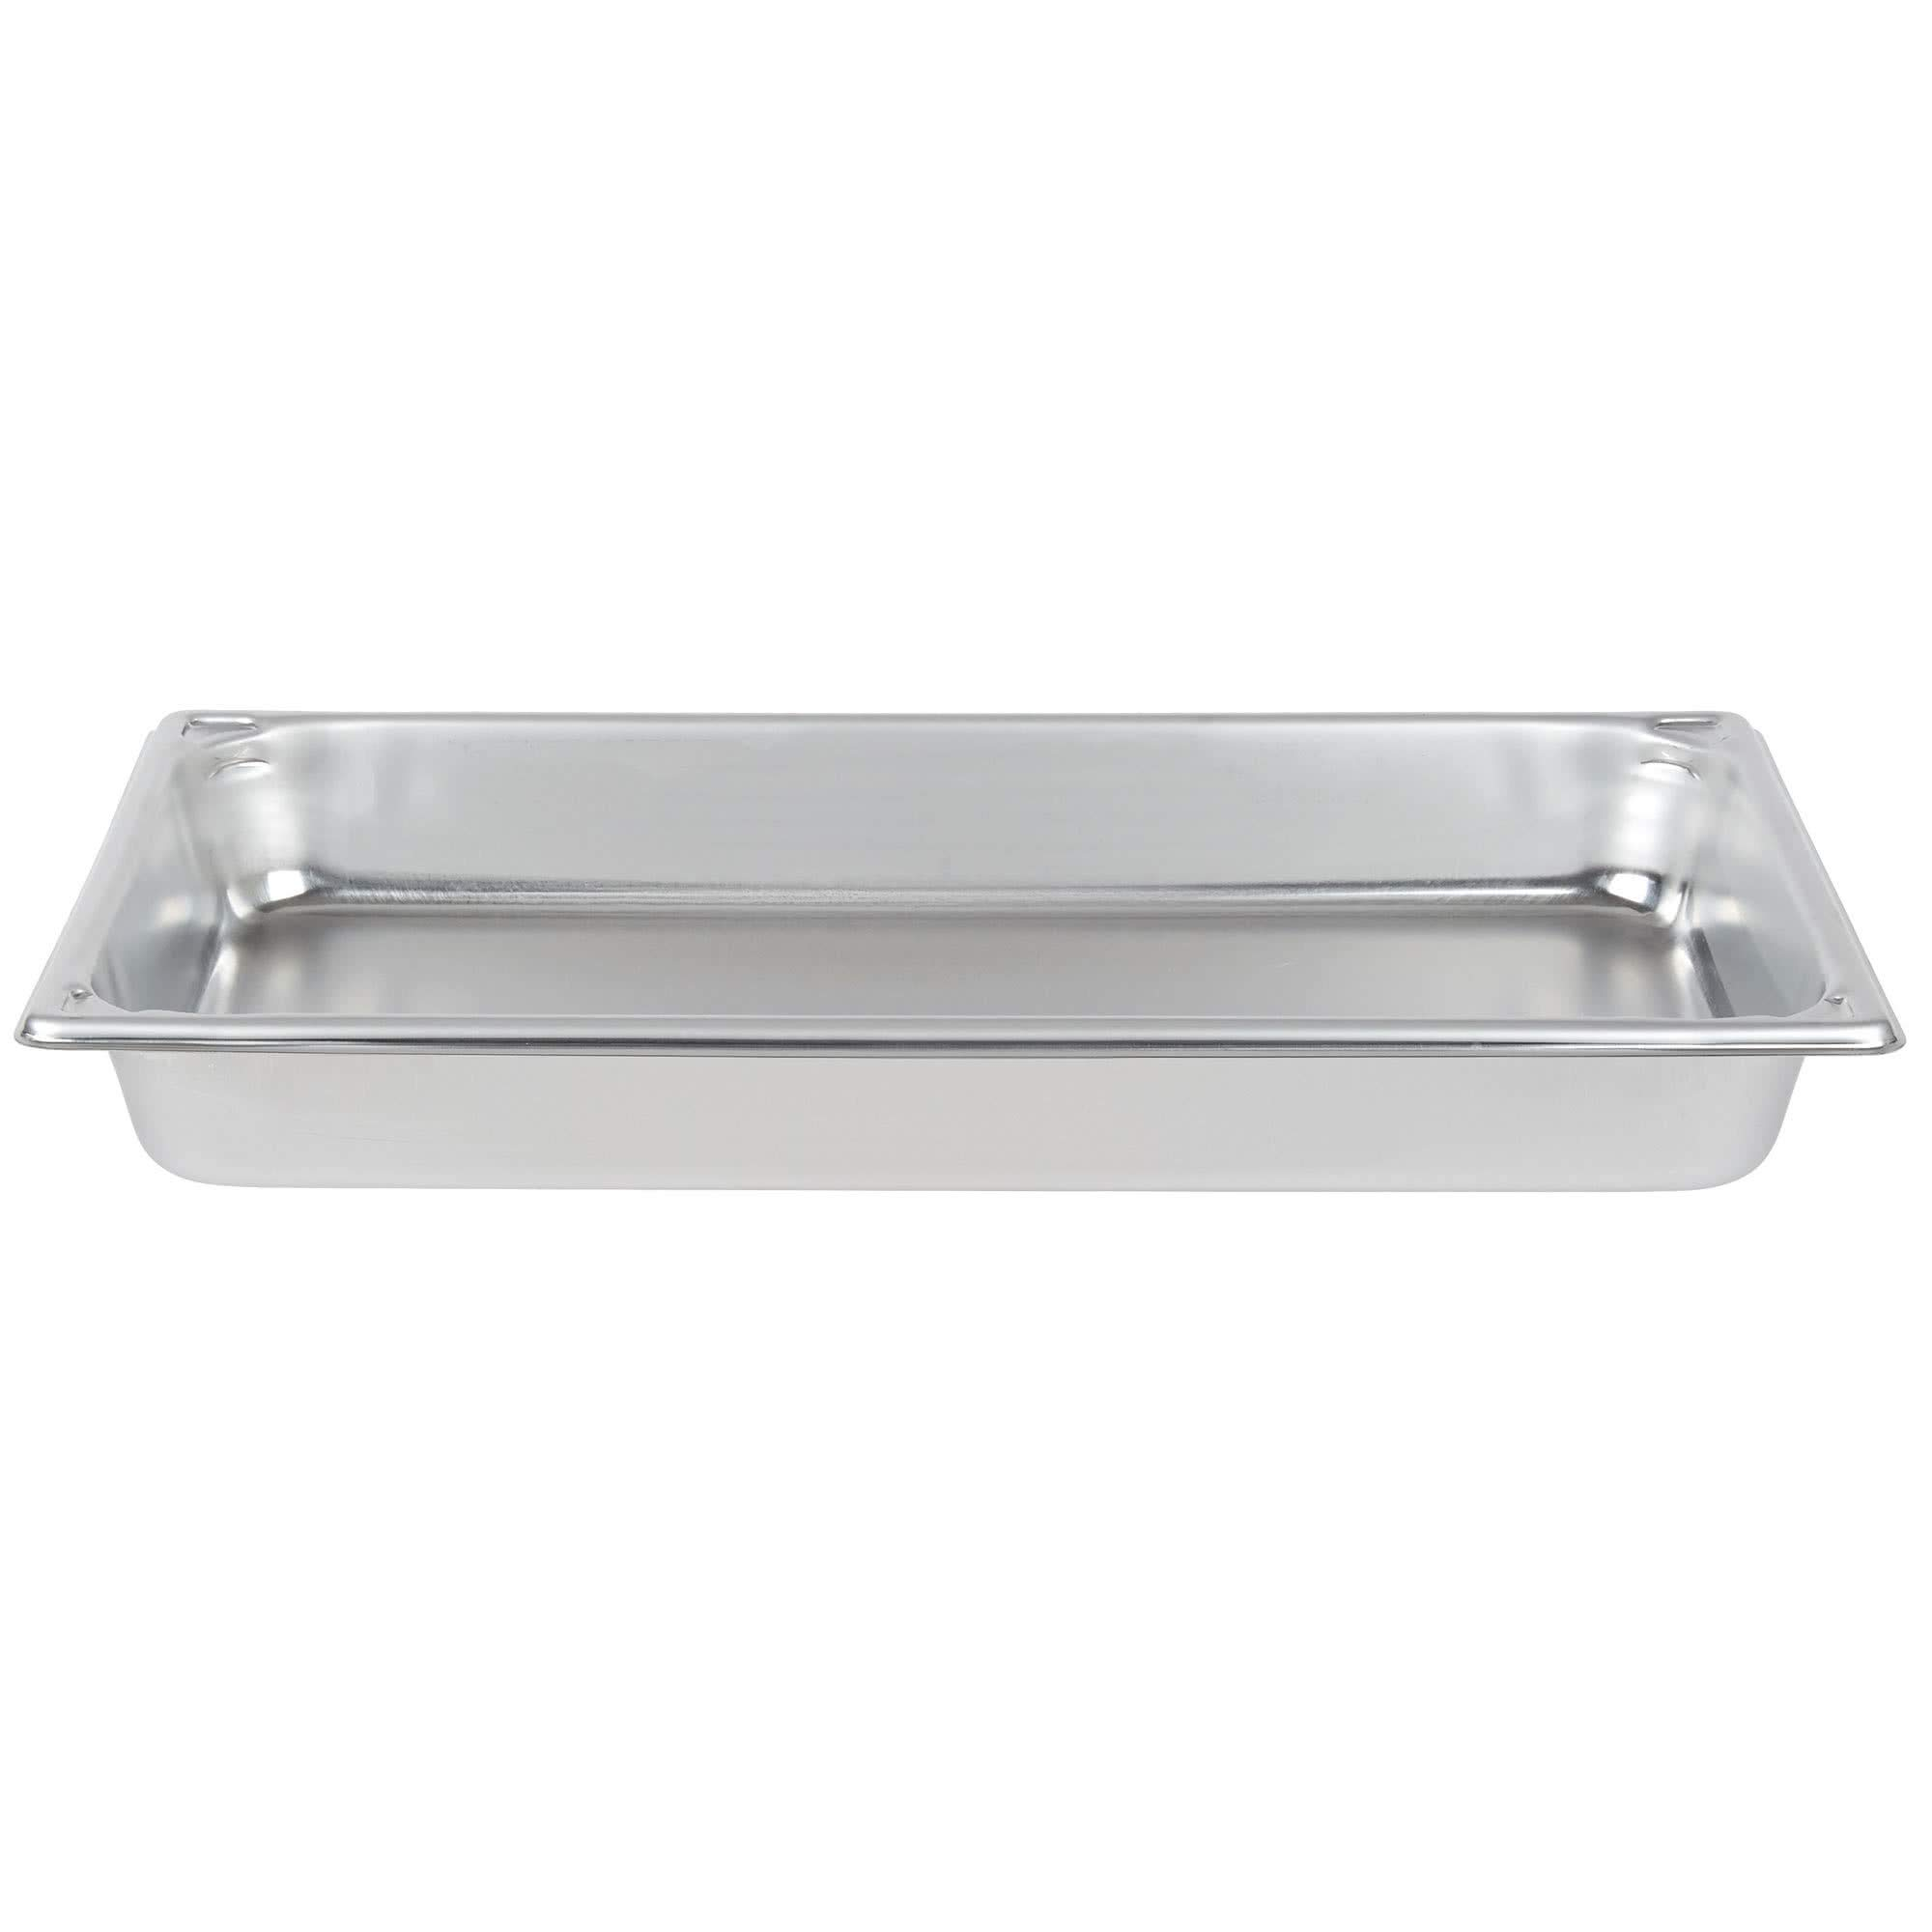 TableTop King 30020 Super Pan Heavy-Duty Full Size Anti-Jam Stainless Steel Steam Table/Hotel Pan - 2 1/2'' Deep by TableTop King